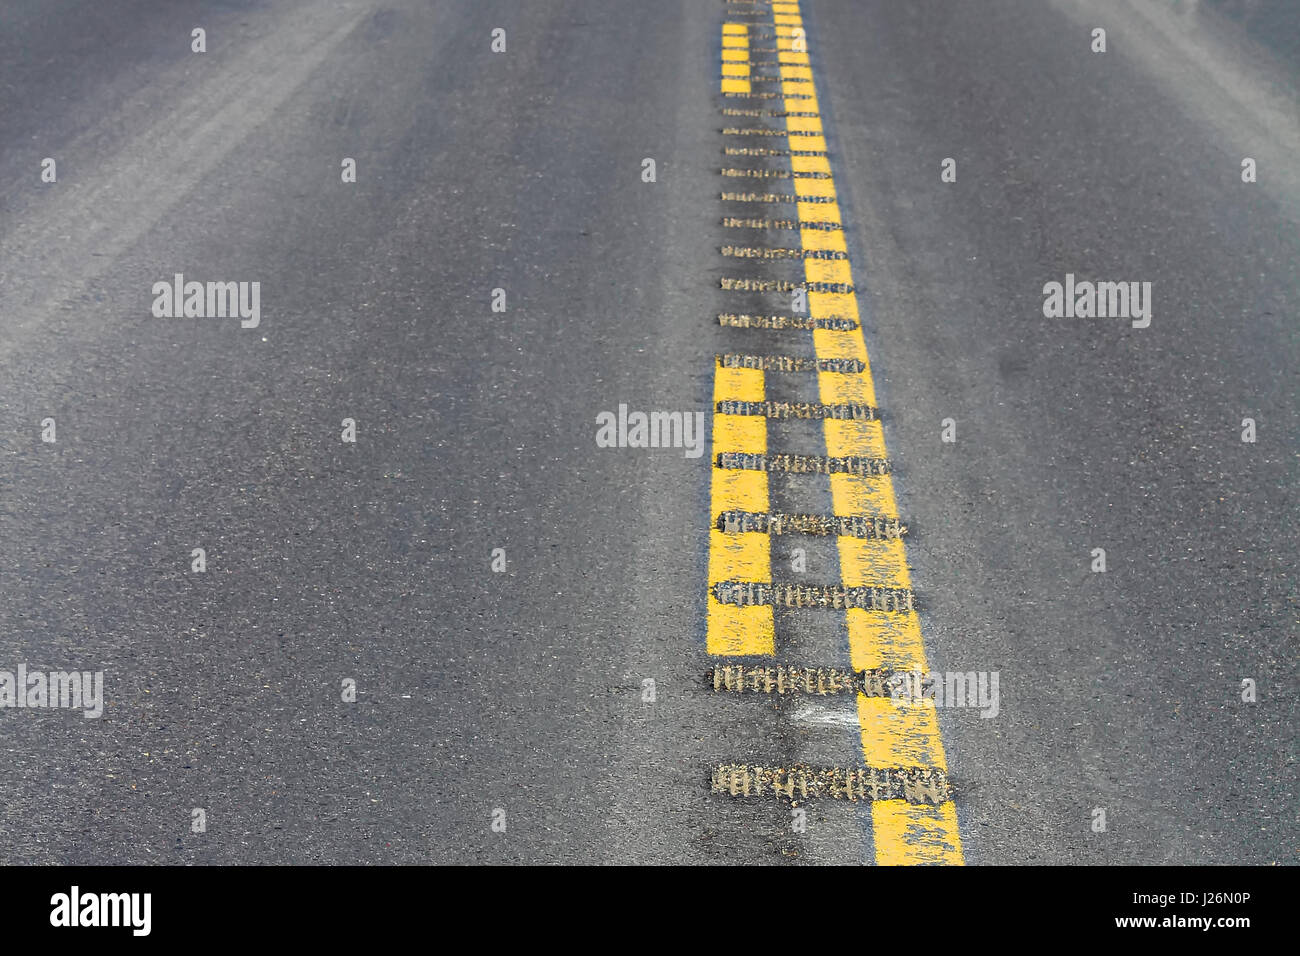 Closeup view of center rumble strips on a highway. Stock Photo